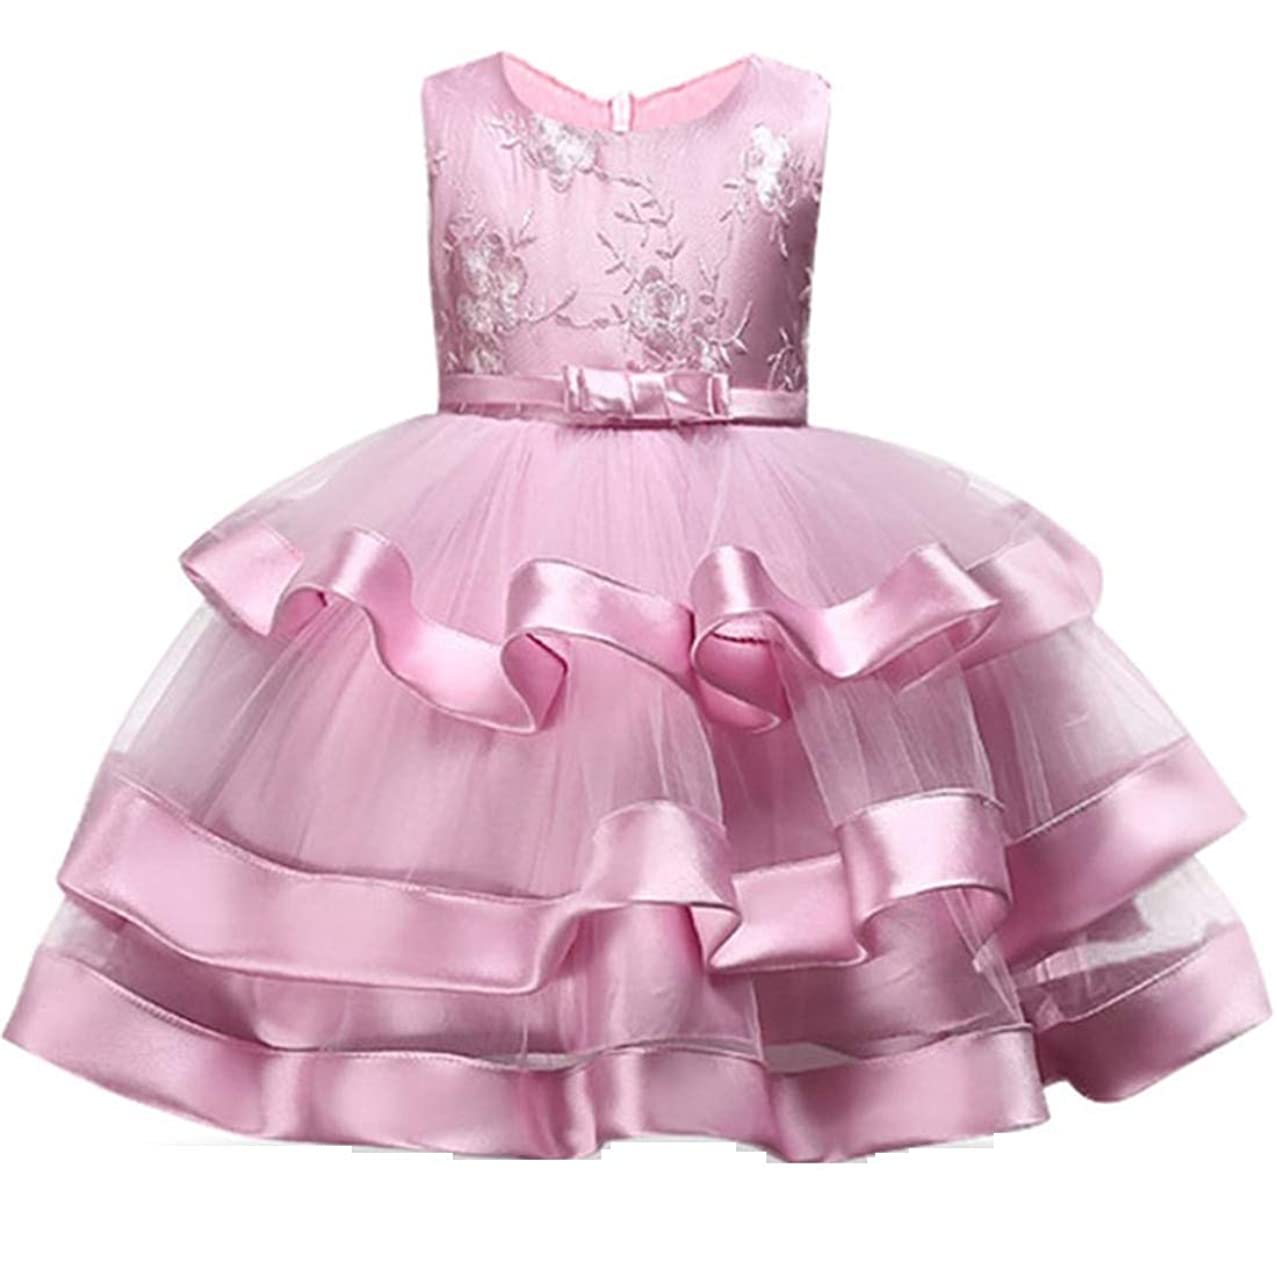 2-10T Flower Girls Dress Little Kids Ruffles Lace Party Wedding Dresses